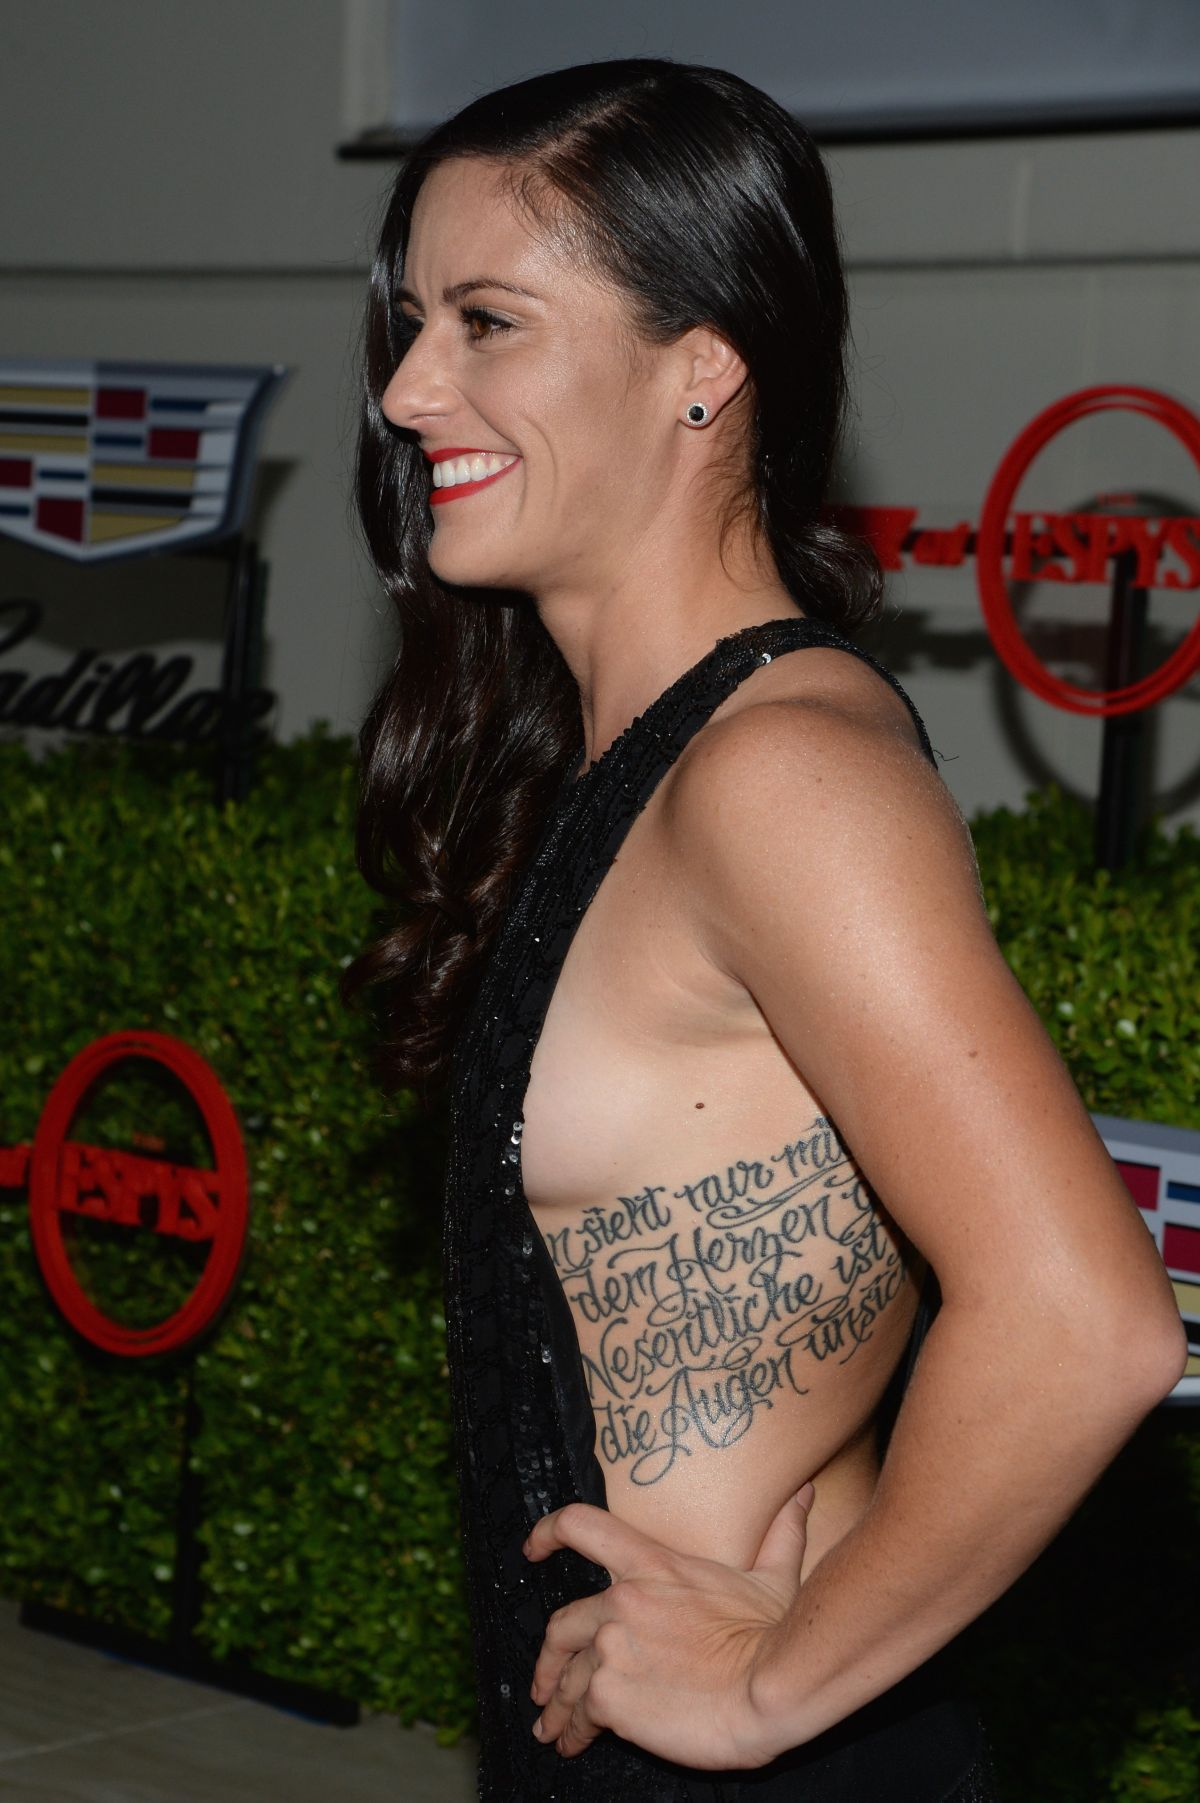 Sideboobs Ali Krieger naked (88 foto and video), Tits, Paparazzi, Feet, butt 2020